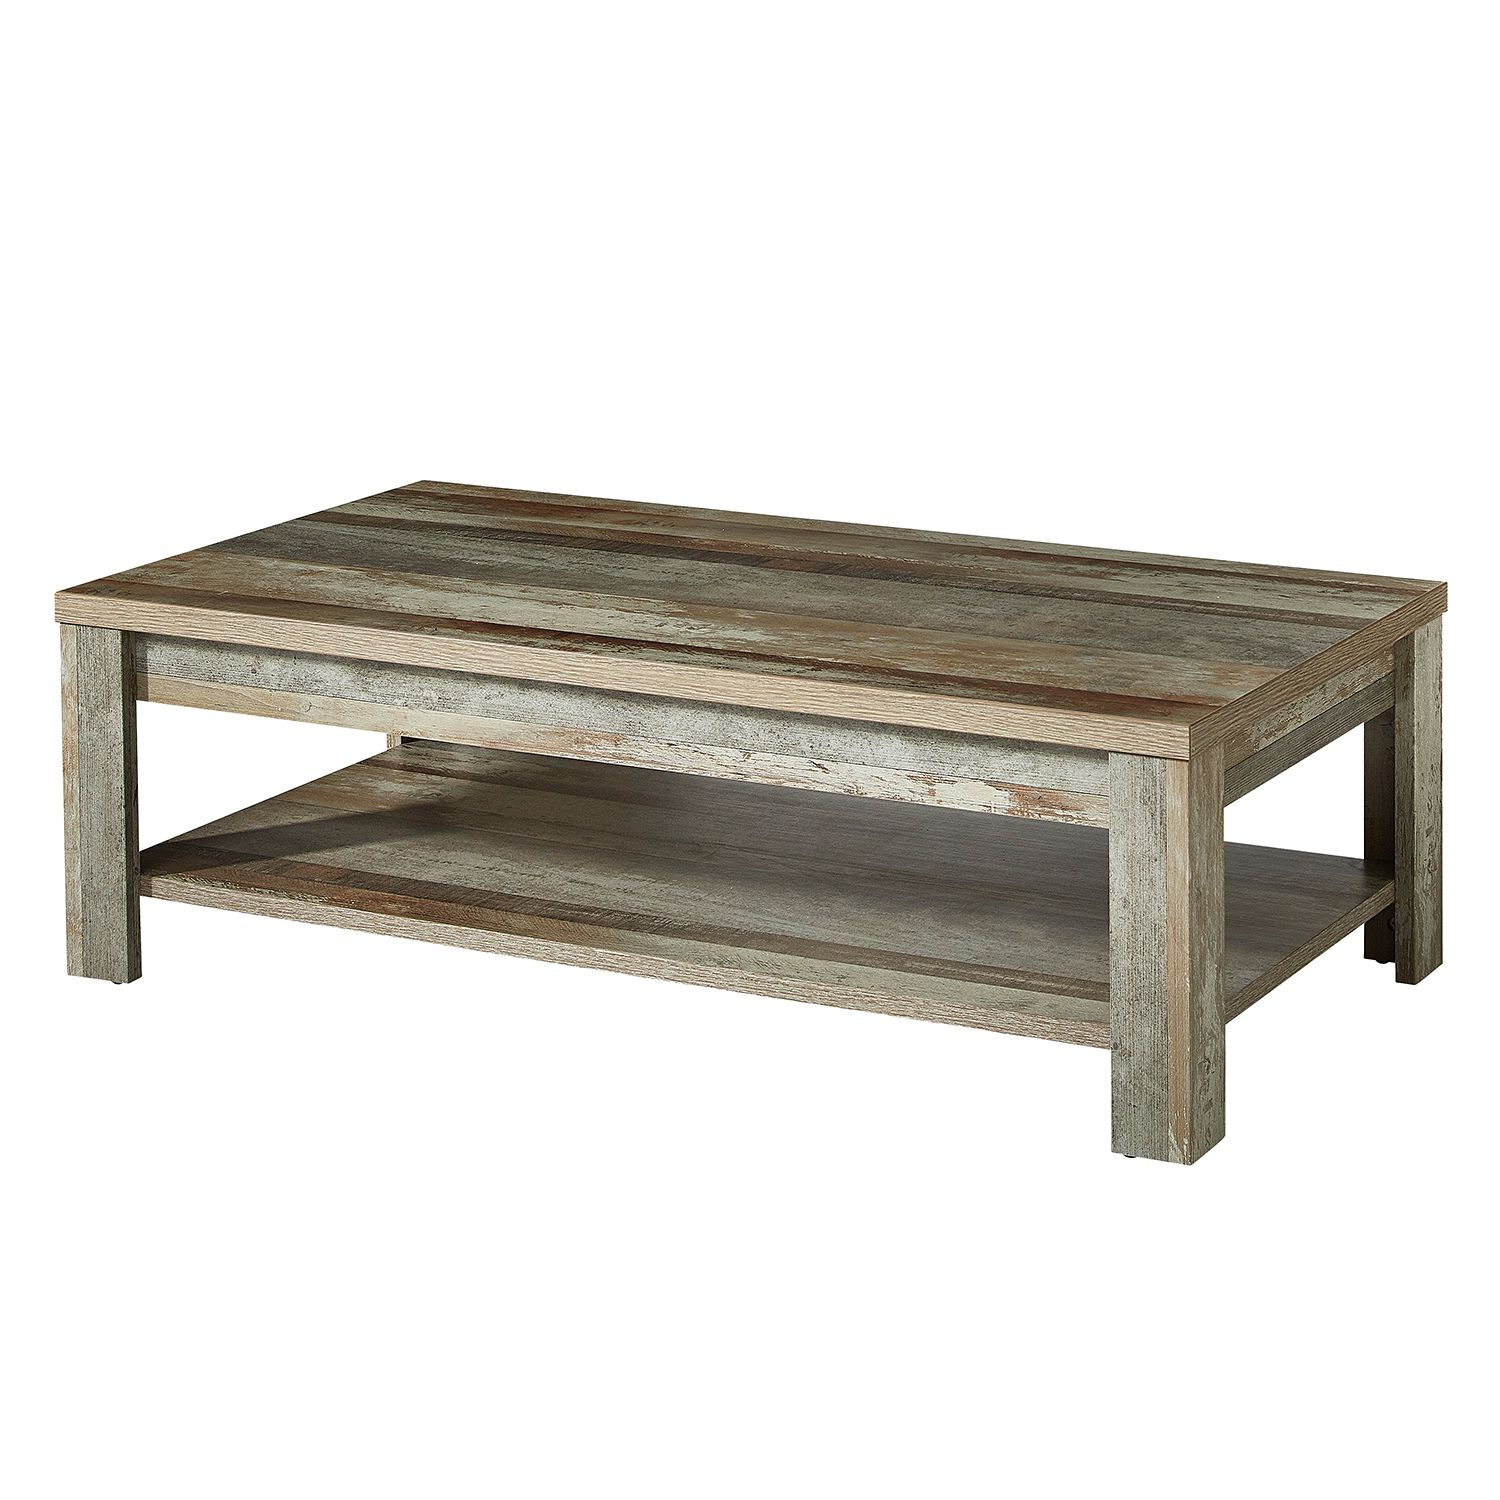 Table basse Tapara - Marron / Gris, roomscape